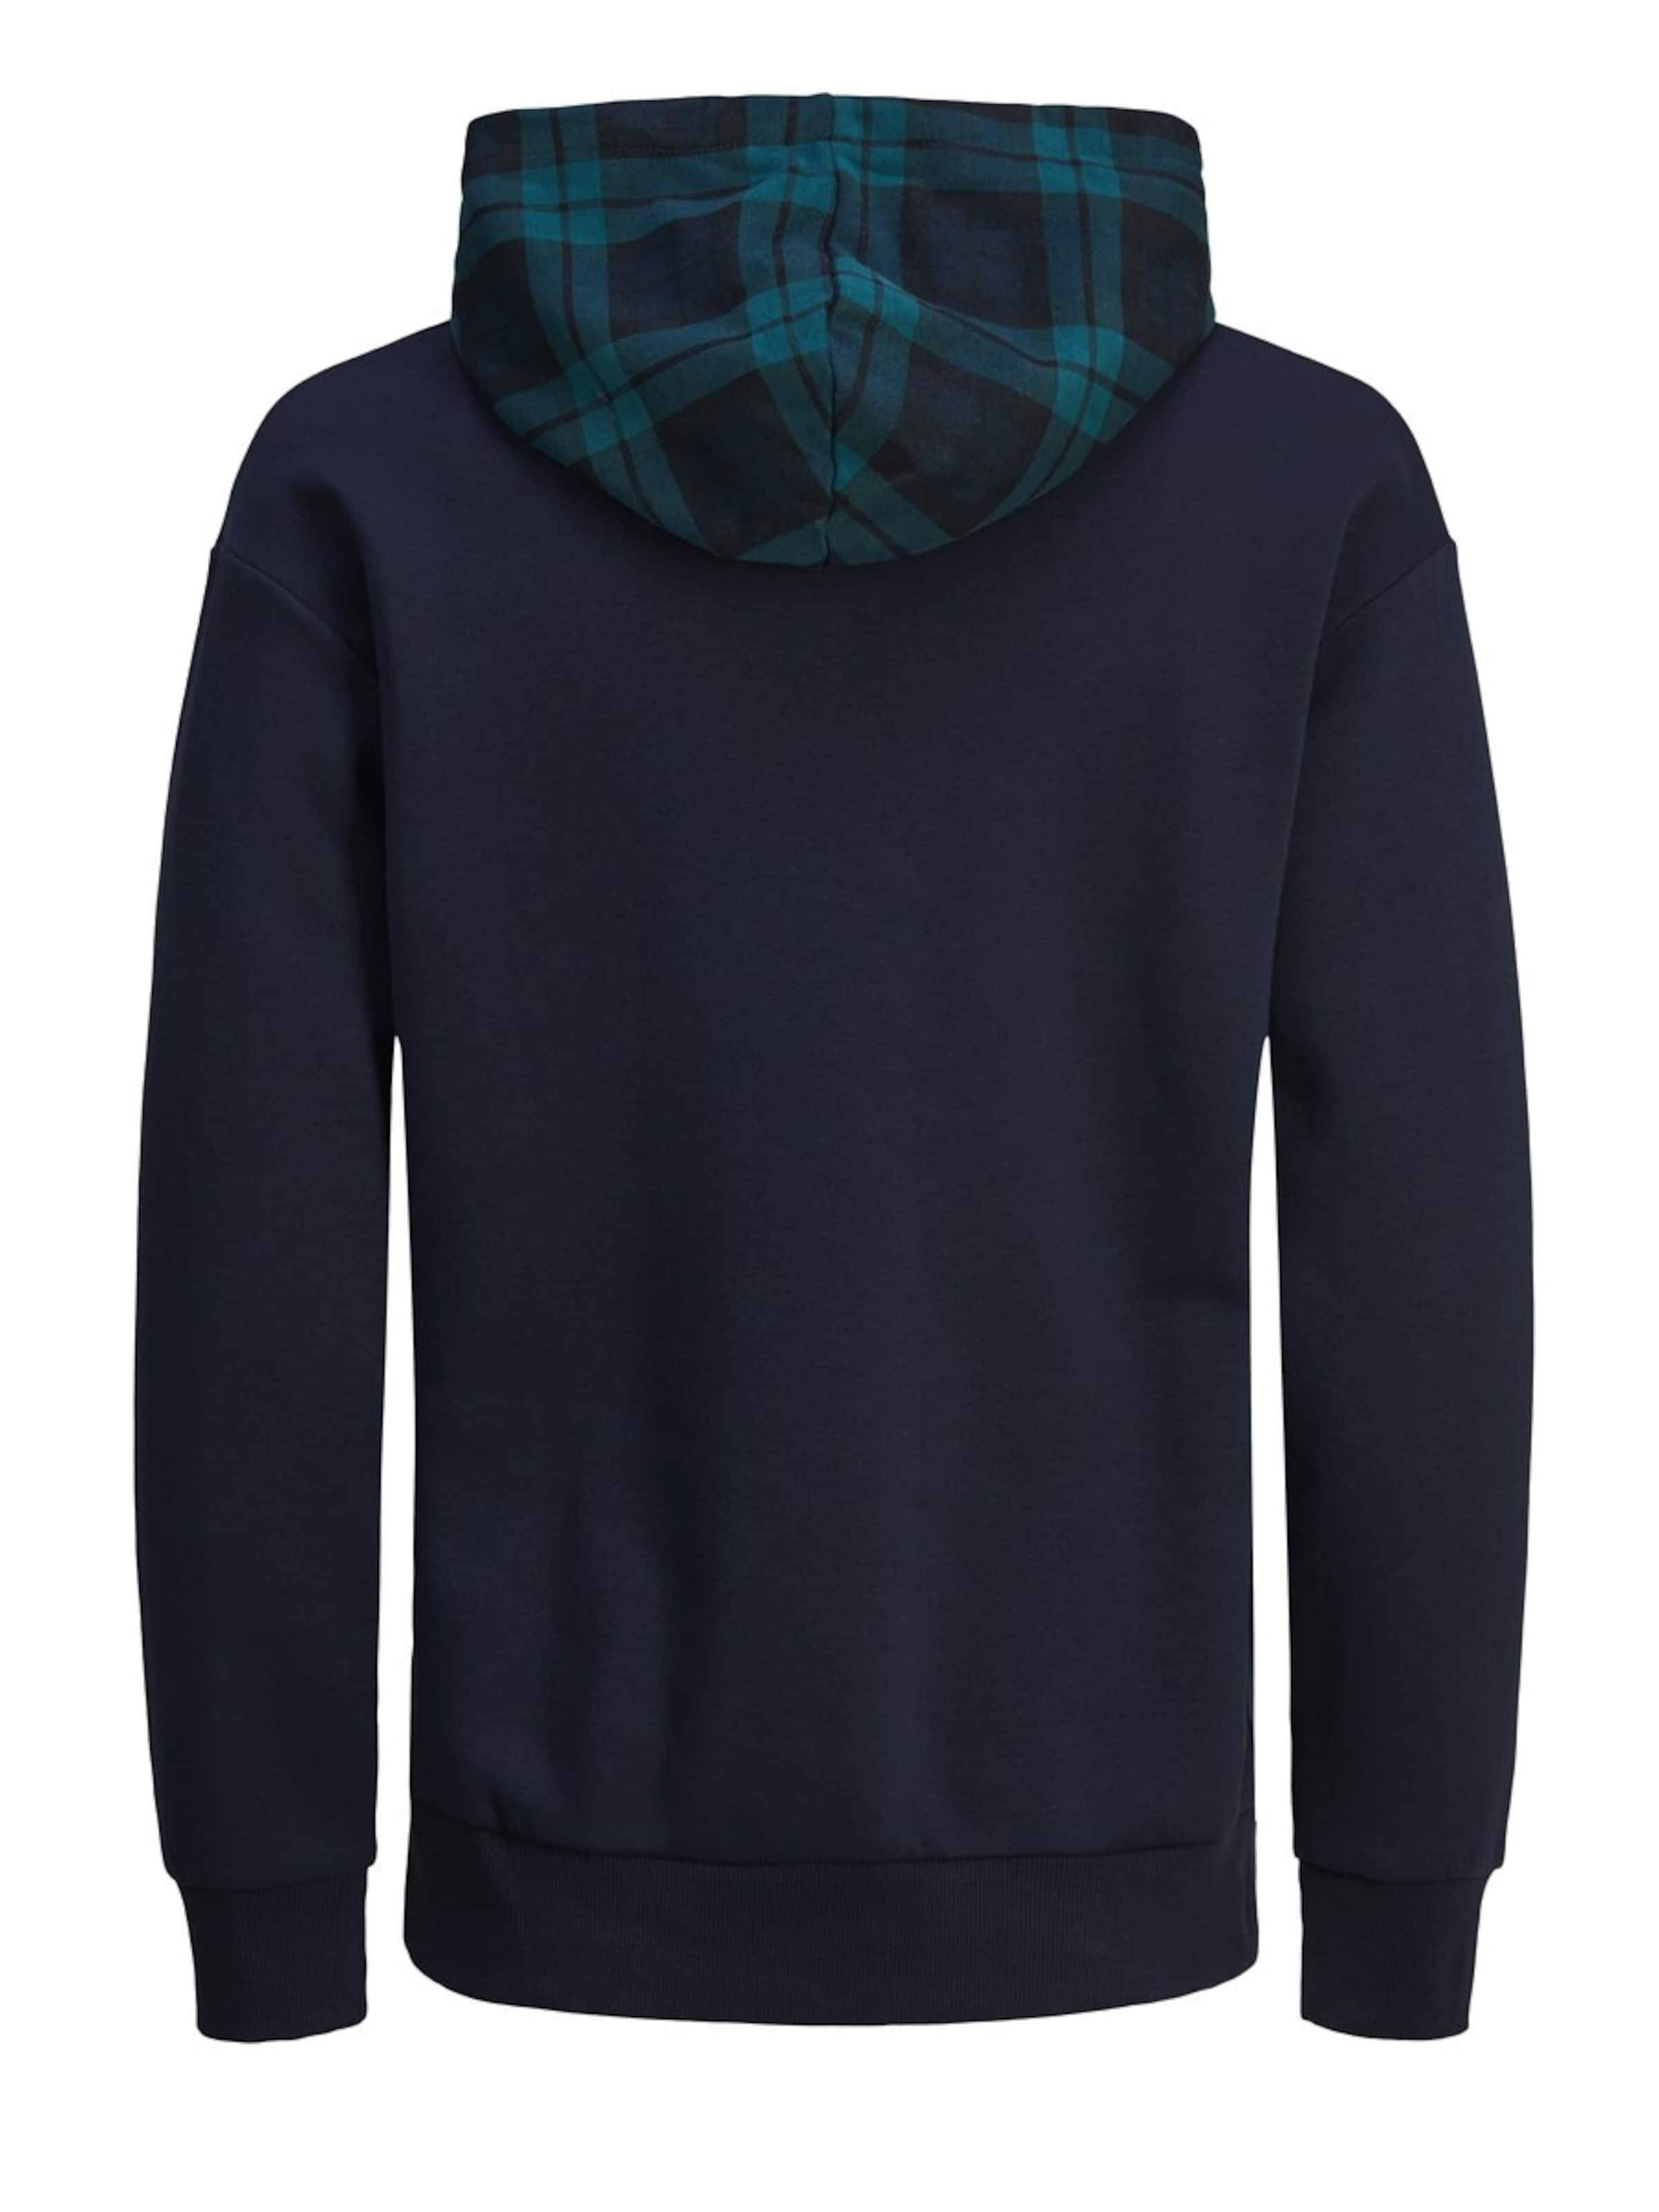 Jones shirt MarinePastel Bleu Jackamp; En Sweat qLA3j54R